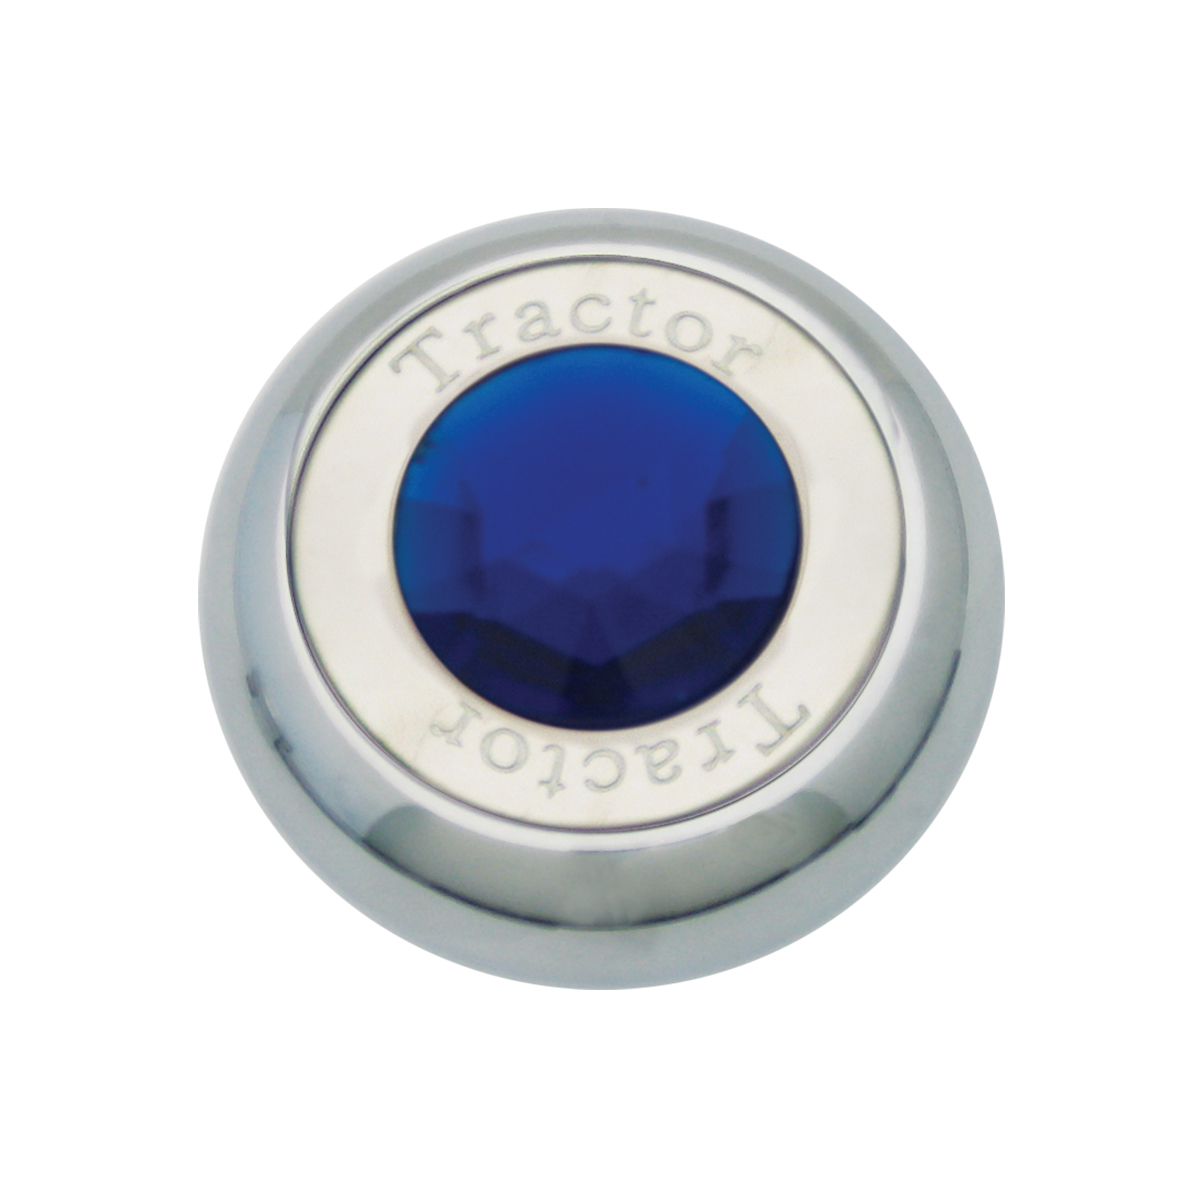 95371 Chrome Screw-In Air Valve Control Knob w/ Crystal